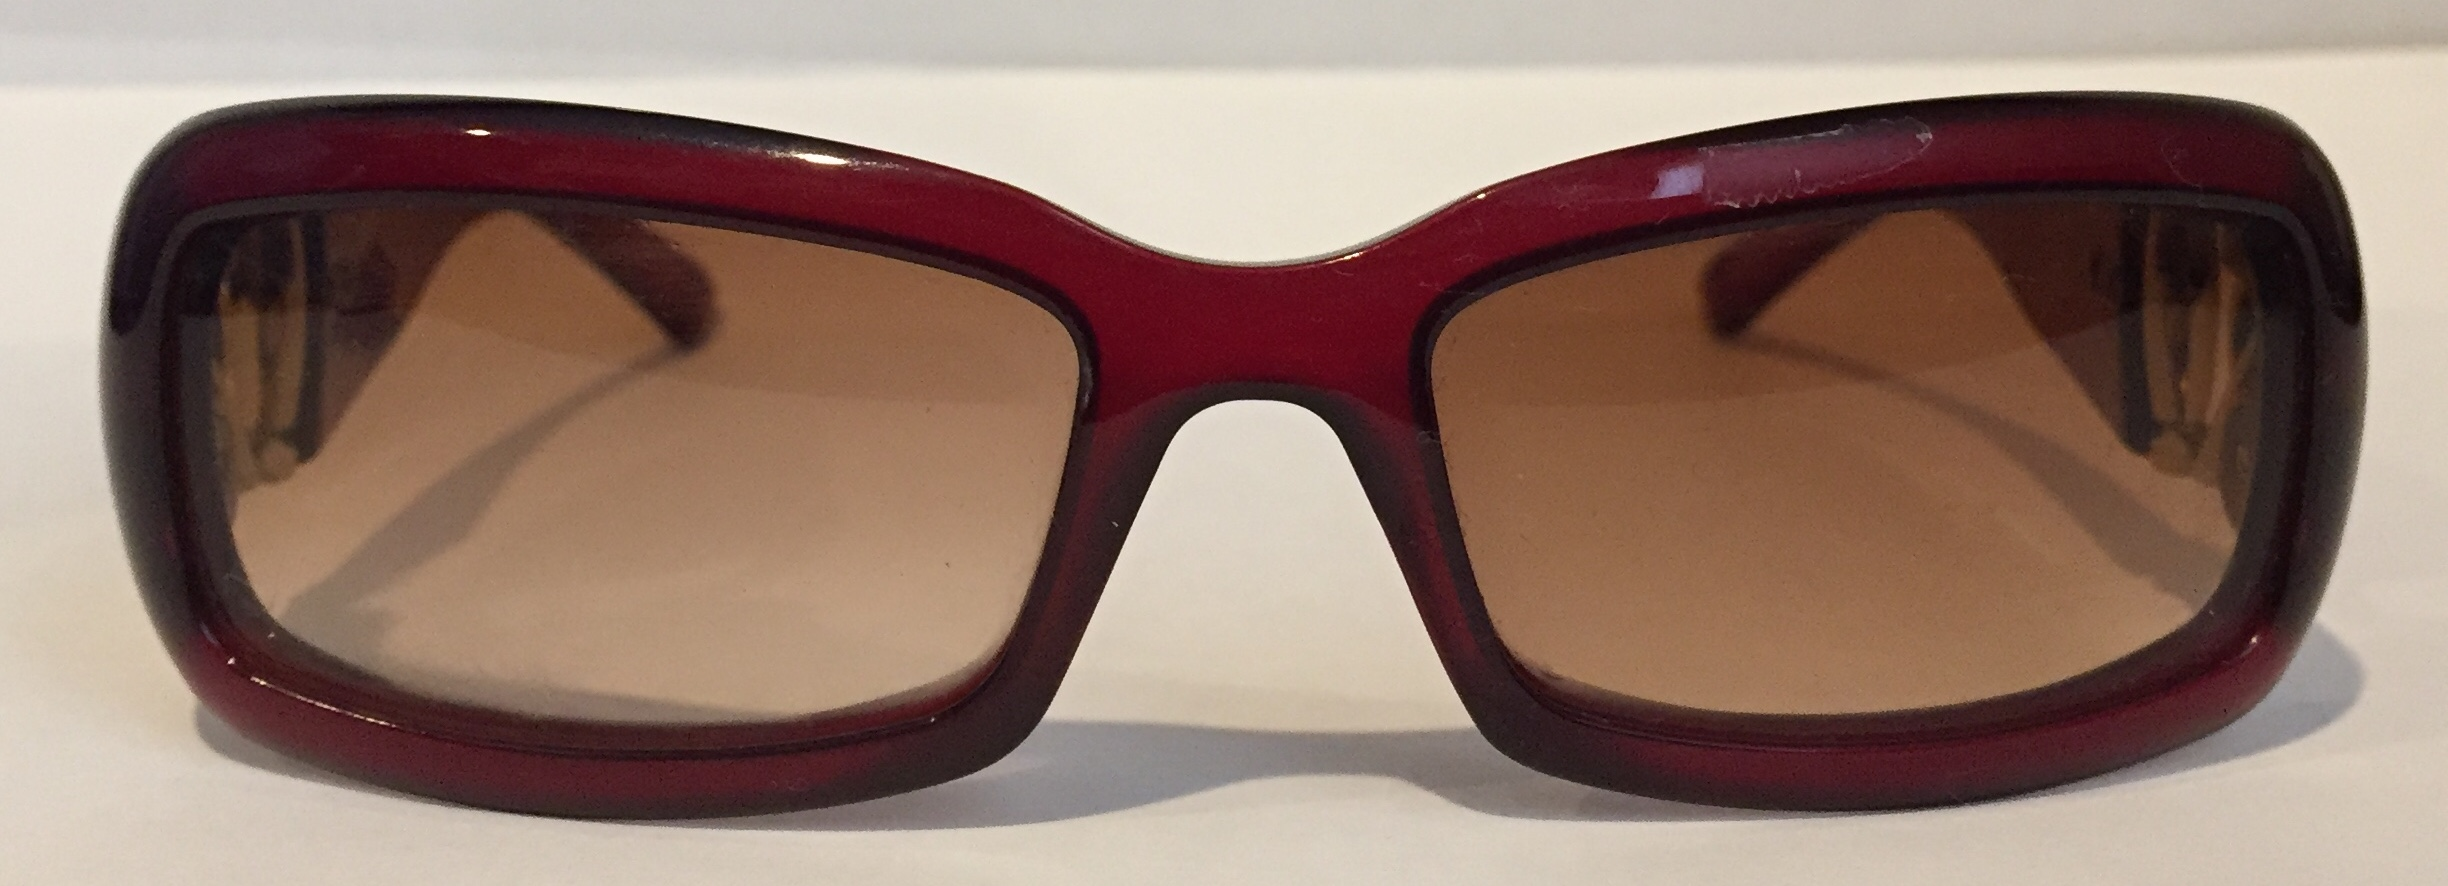 clearance GUCCI 2943  SUNGLASSES